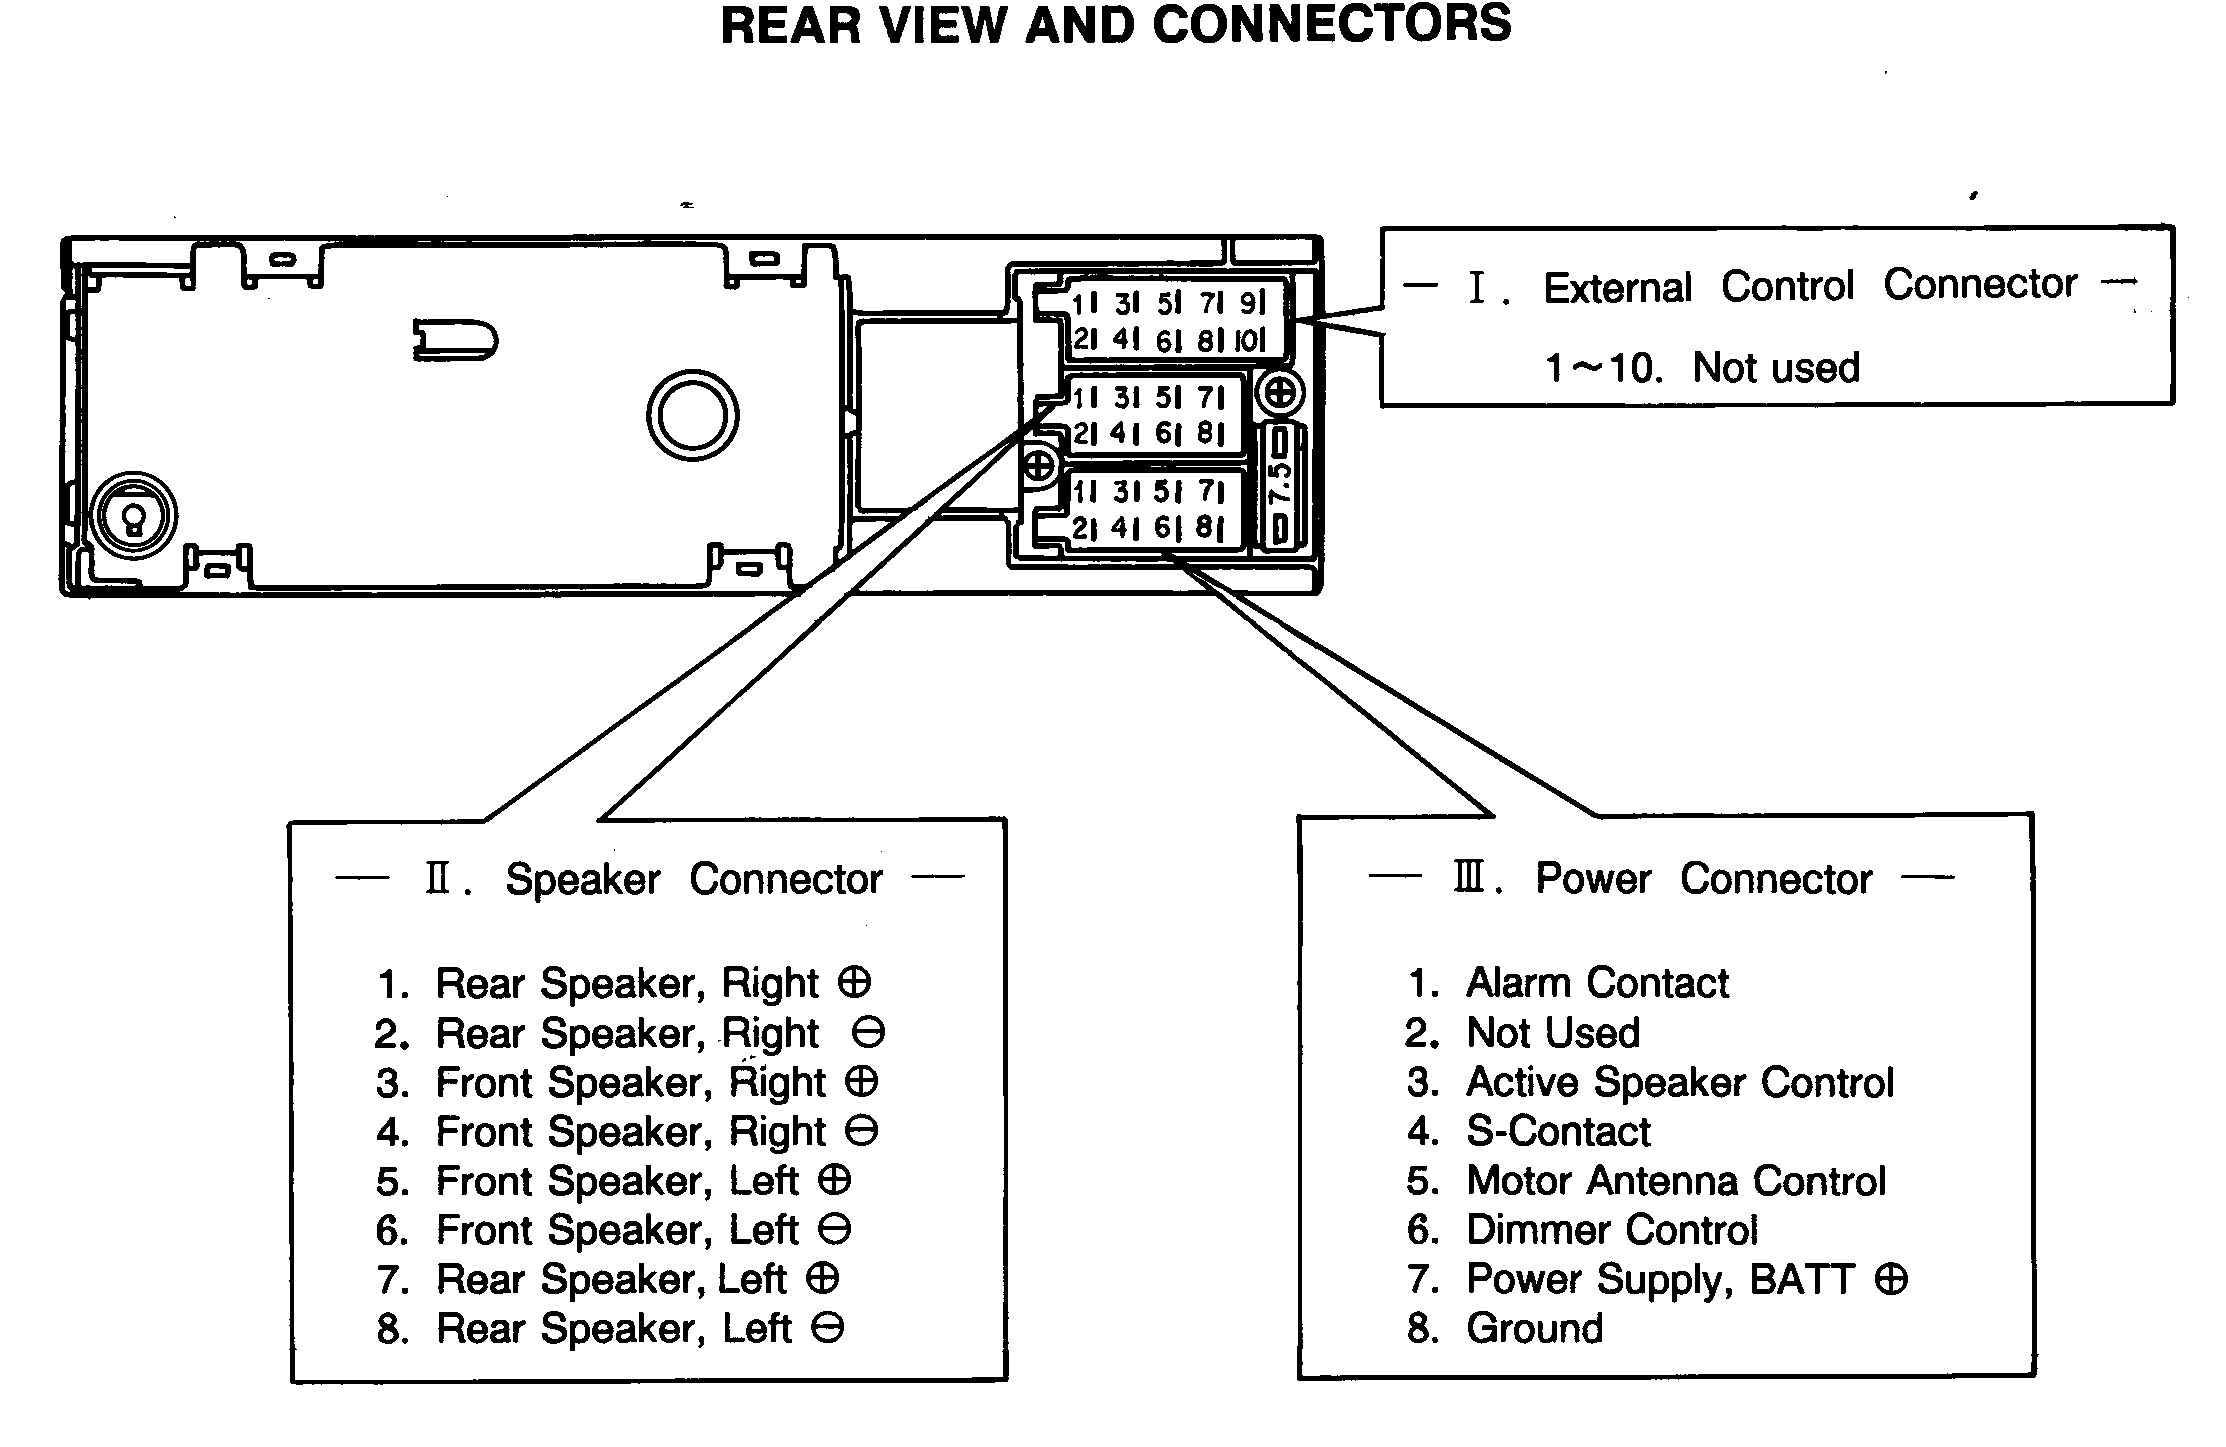 Bose Car Stereo Wiring Diagram Bmw Harness Newfangled Repair Wire Codes Of